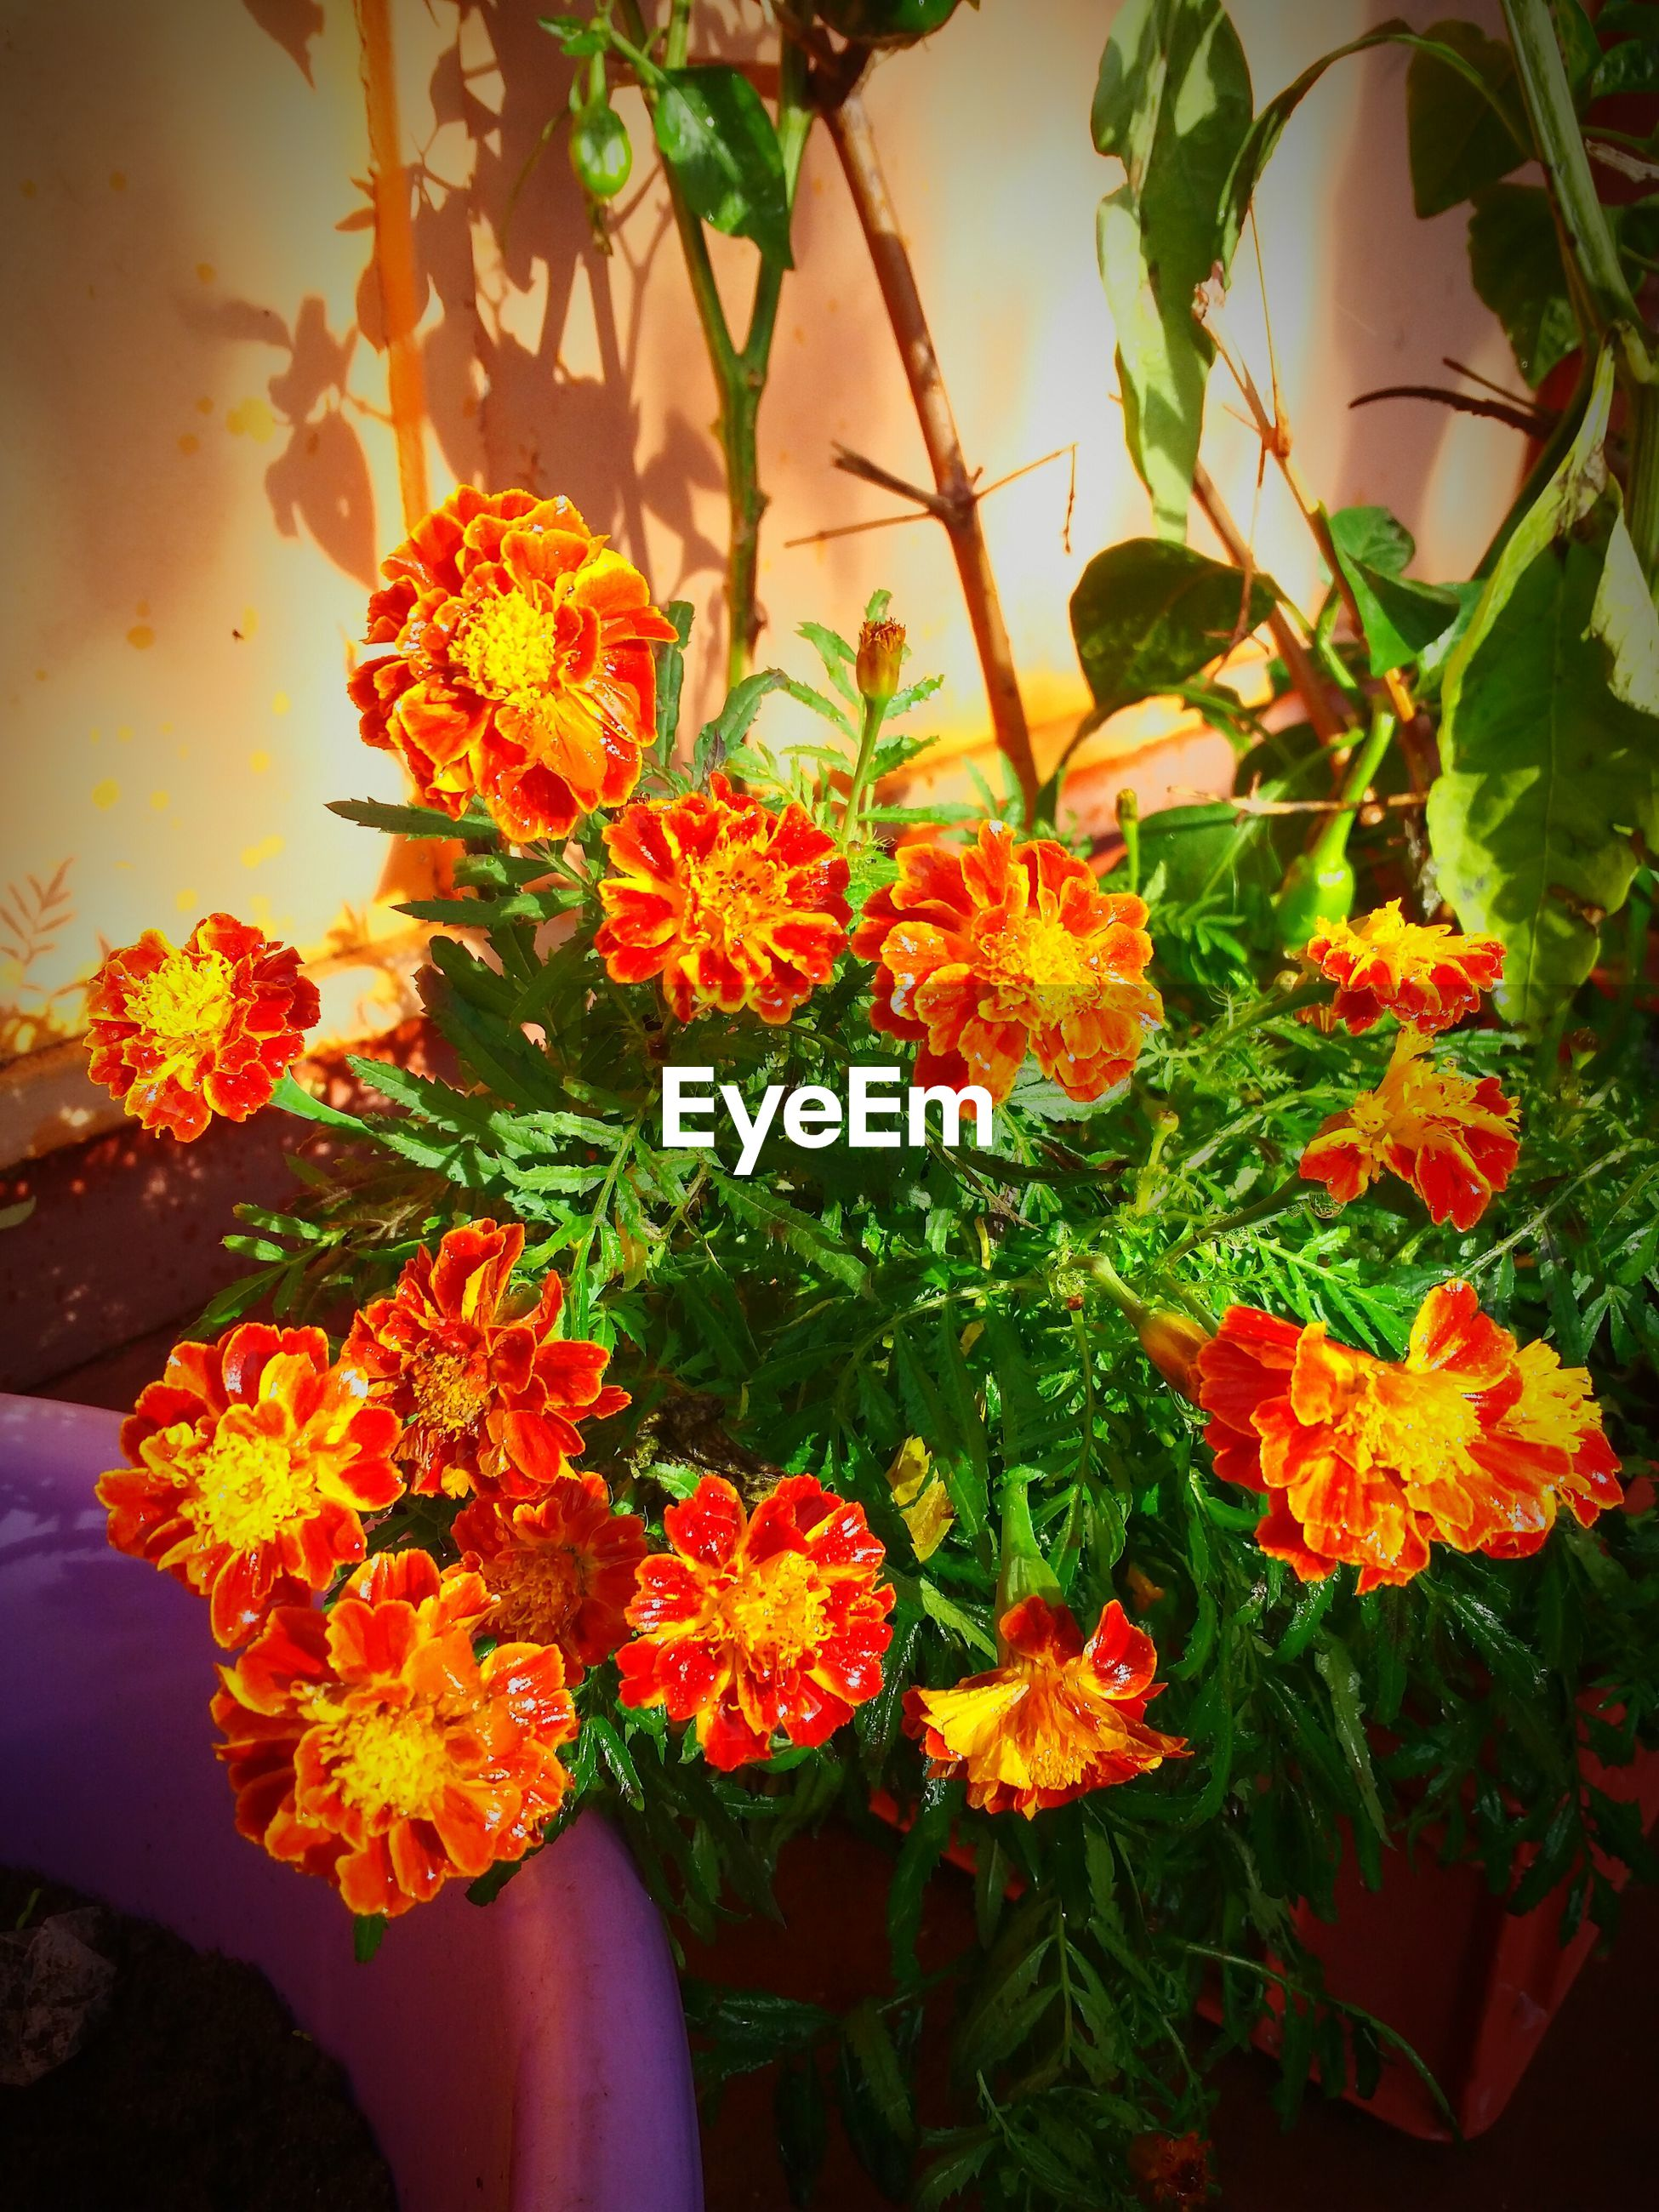 flower, petal, freshness, fragility, growth, beauty in nature, yellow, plant, flower head, orange color, nature, leaf, blooming, in bloom, potted plant, close-up, blossom, no people, sunlight, botany